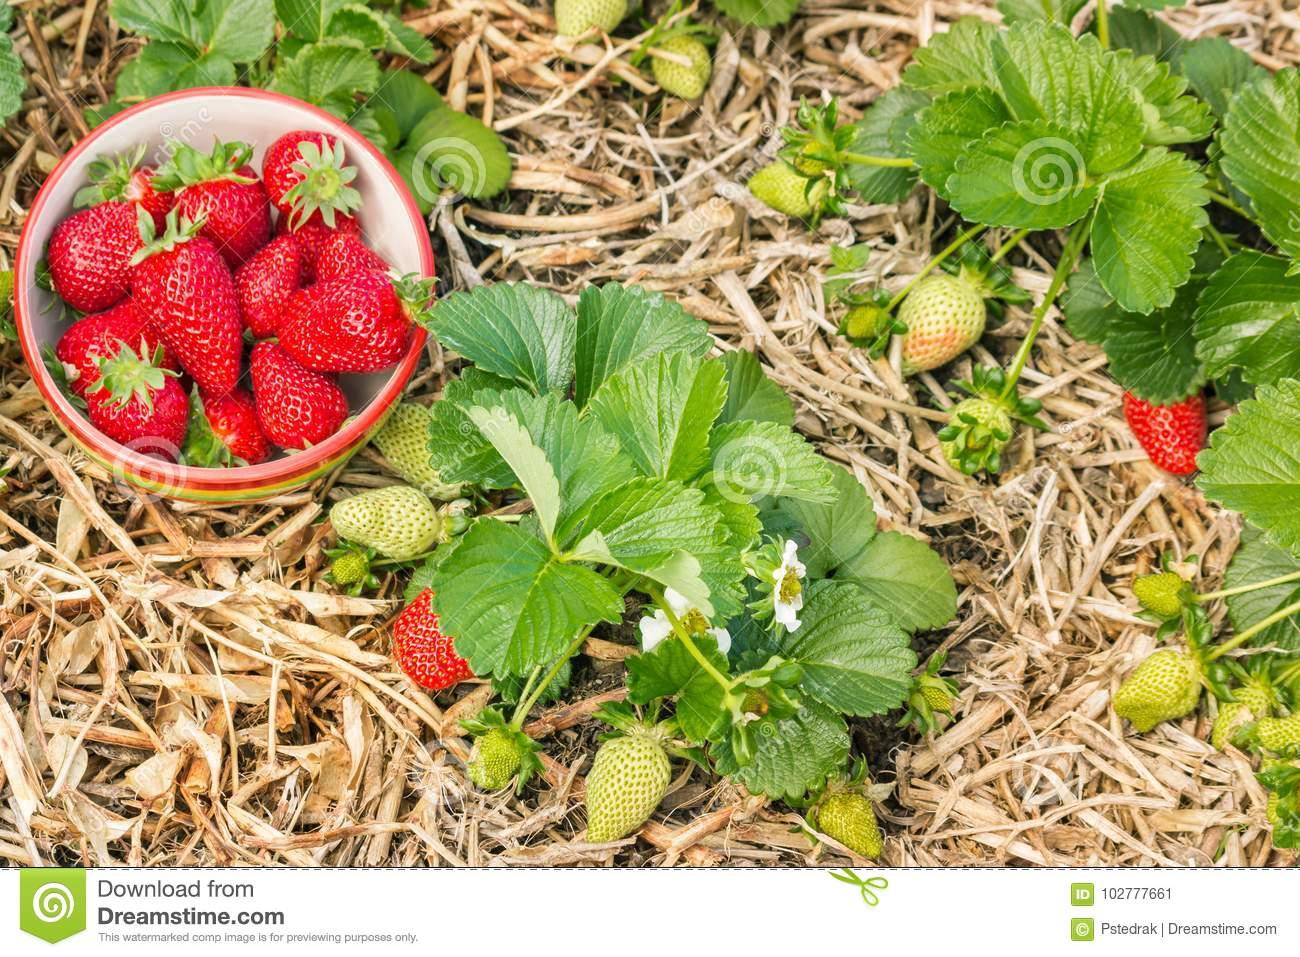 Organically grown strawberry plants with ripe strawberries in china bowl